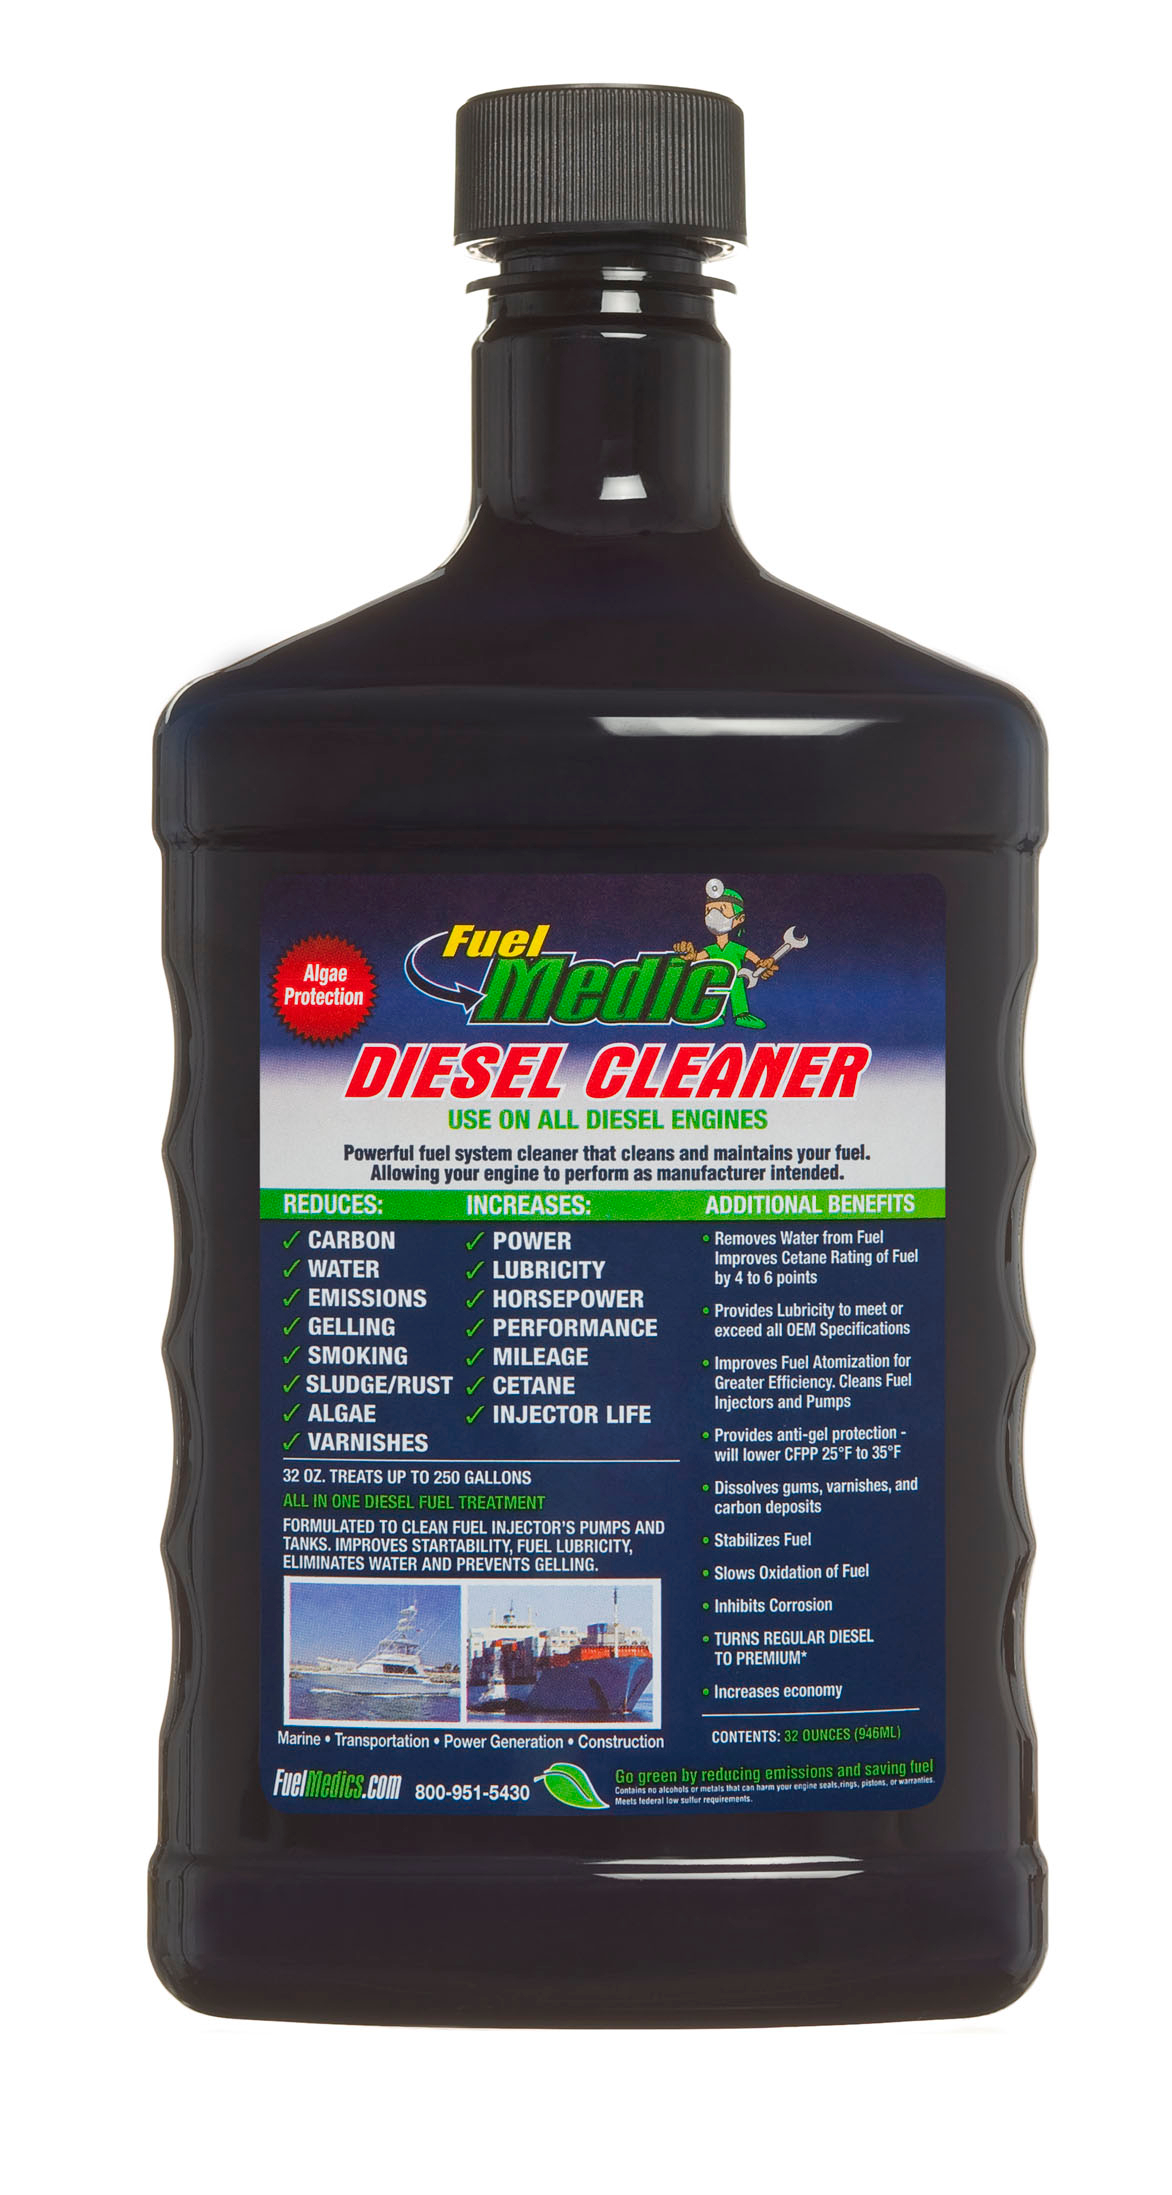 DIESEL CLEANER QUART